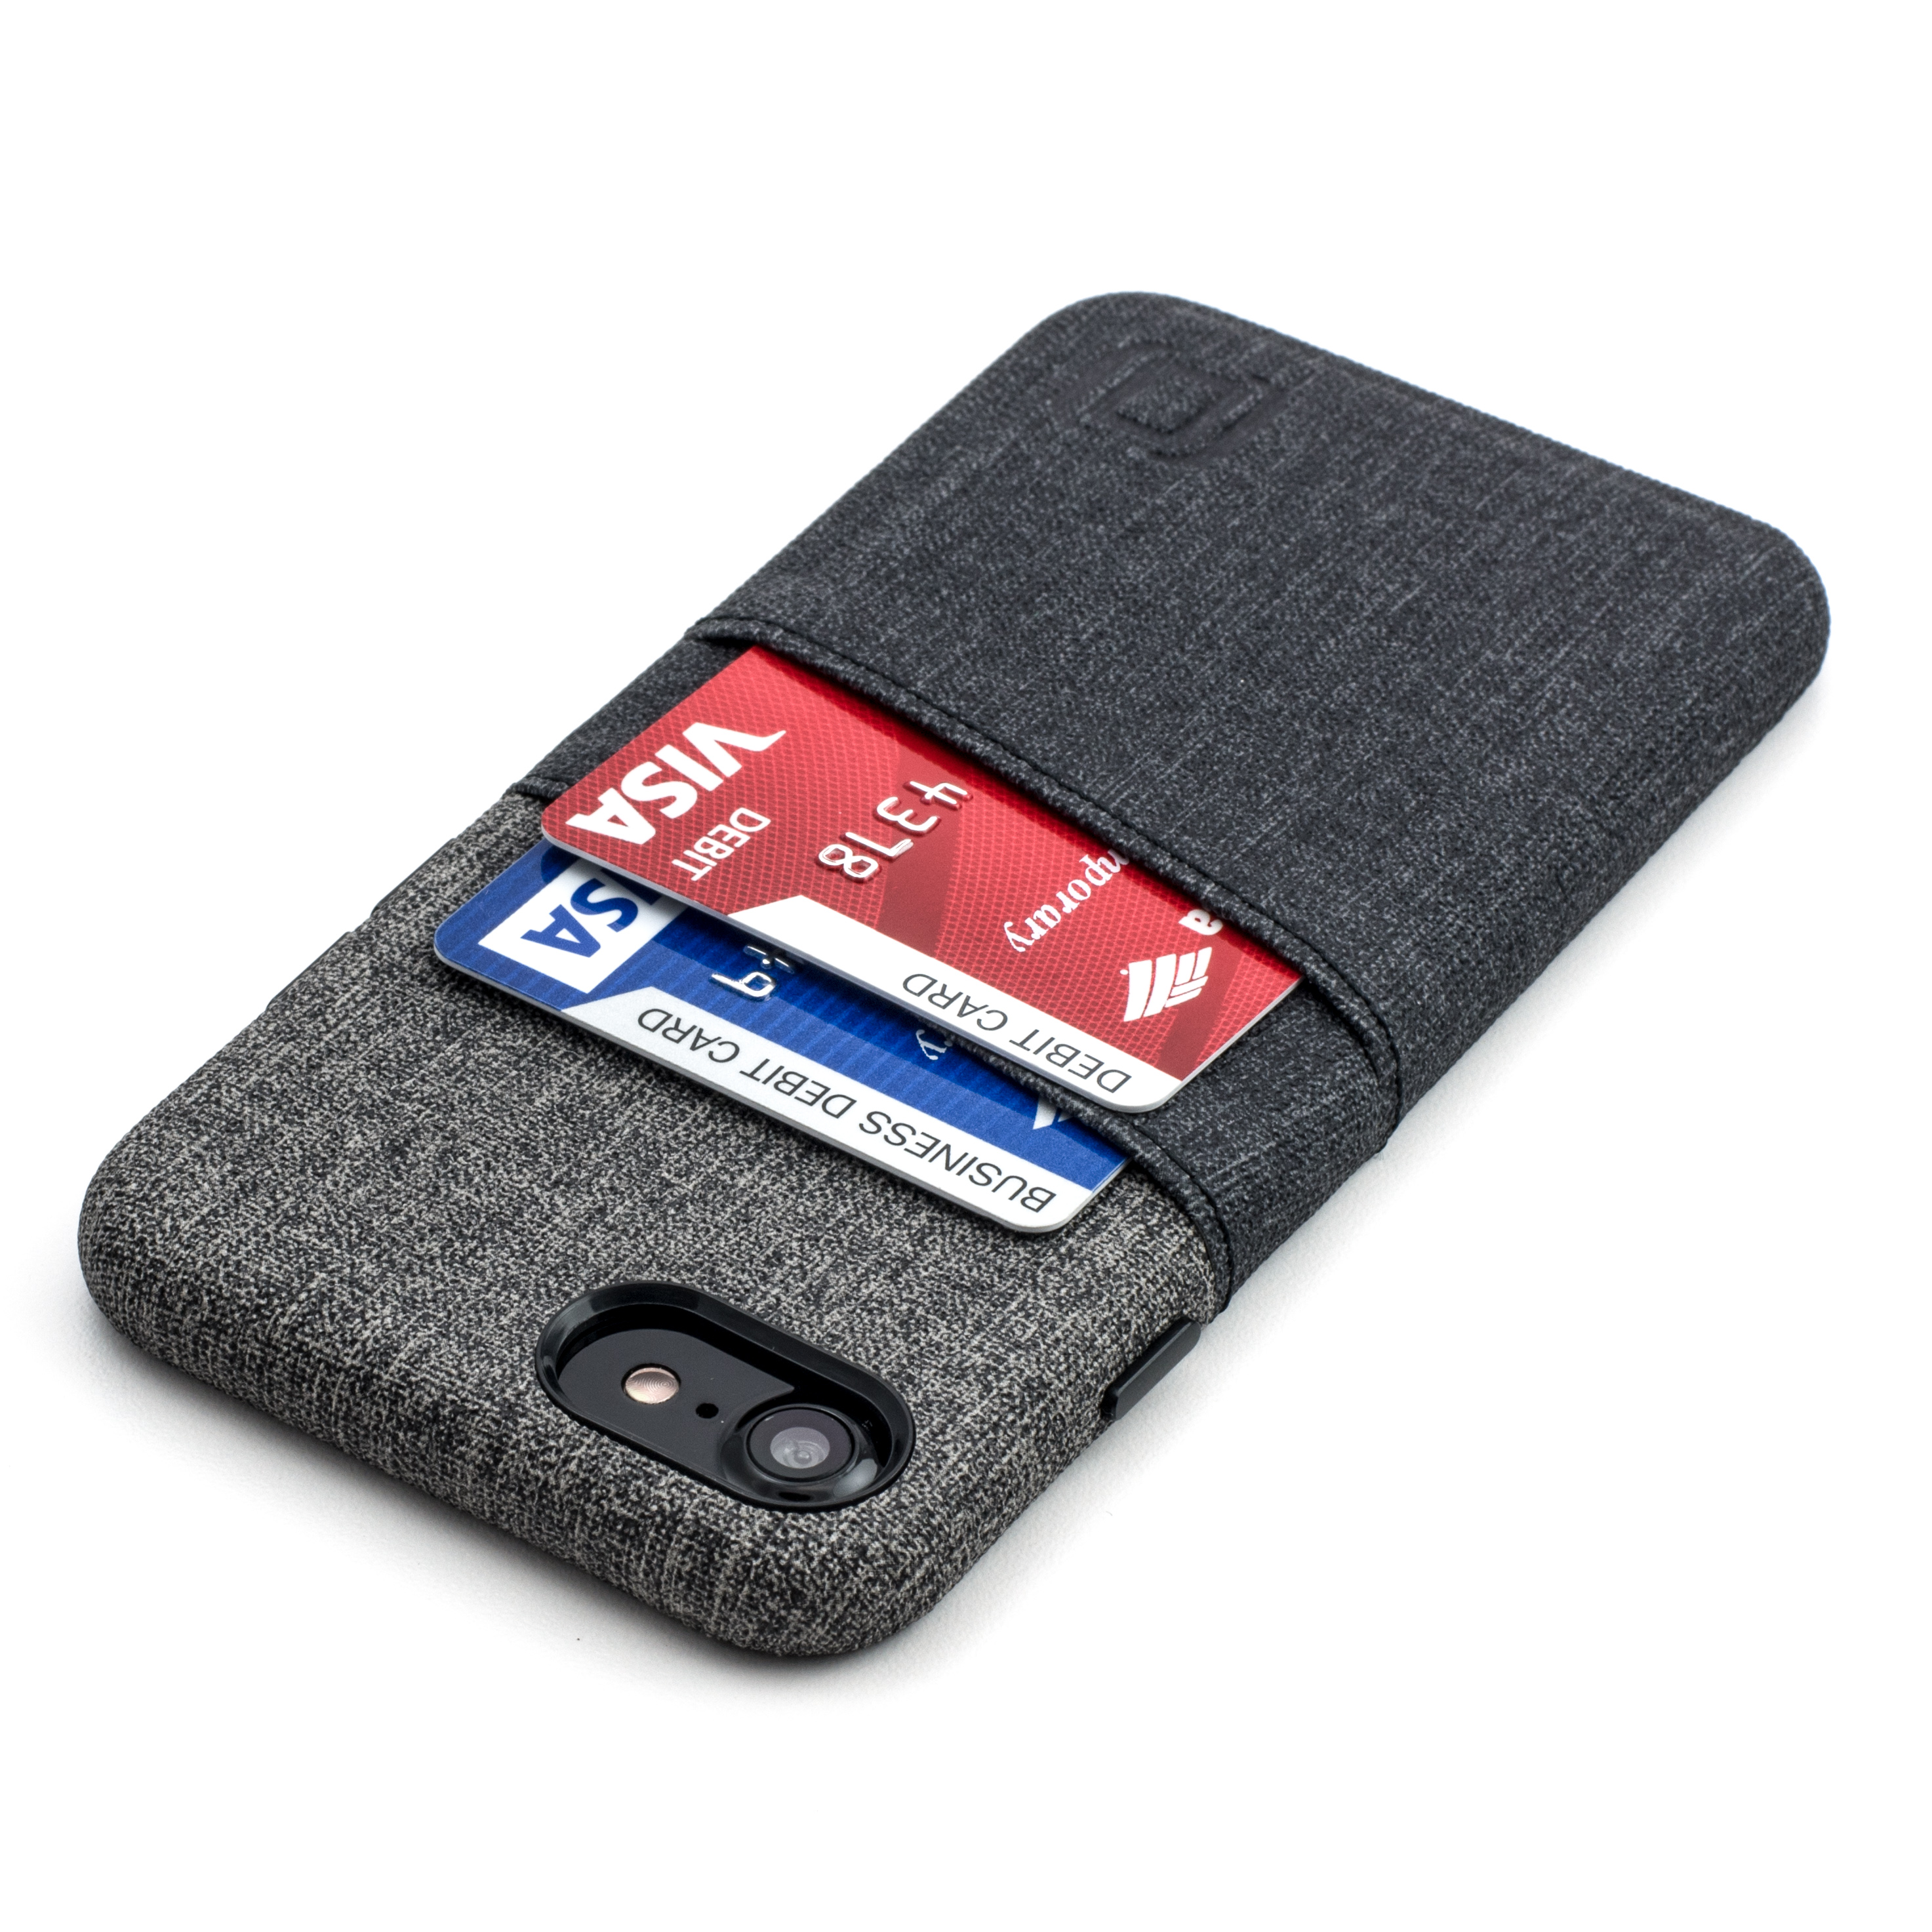 Black and Grey and iPhone XR: Twill Canvas Style Synthetic Leather Card Case: Ultra Slim Professional Executive Pouch Cover with 4 Card Holder Slots Dockem Luxe Wallet Sleeve 2.0 for iPhone 11 6.1